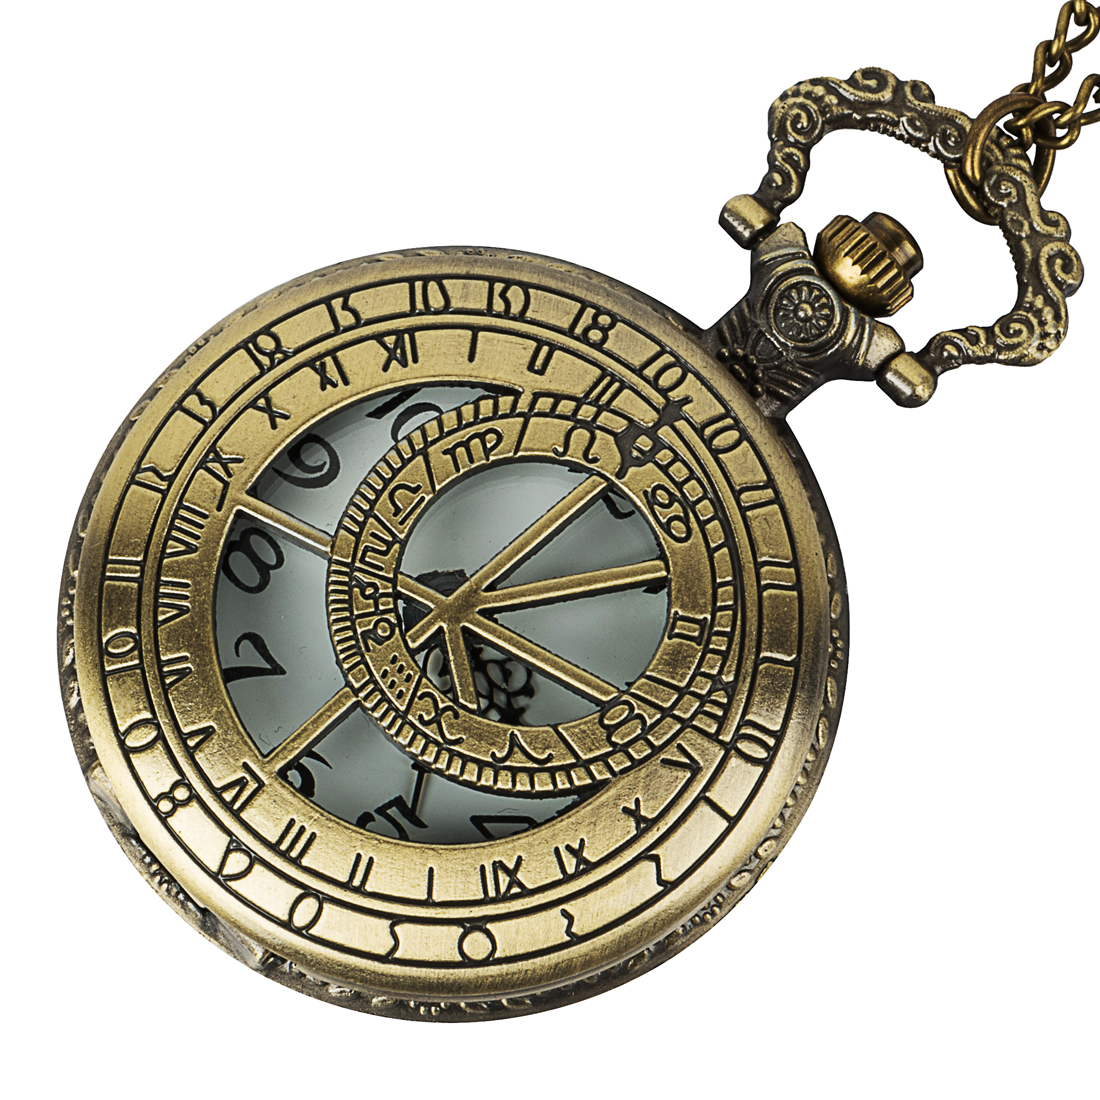 Retro Quartz Watch Necklace Clock Best Gift To Women Men New Arrival Vintage Hollow Dr Doctor Who Pocket Watches With Chain in Pocket Fob Watches from Watches